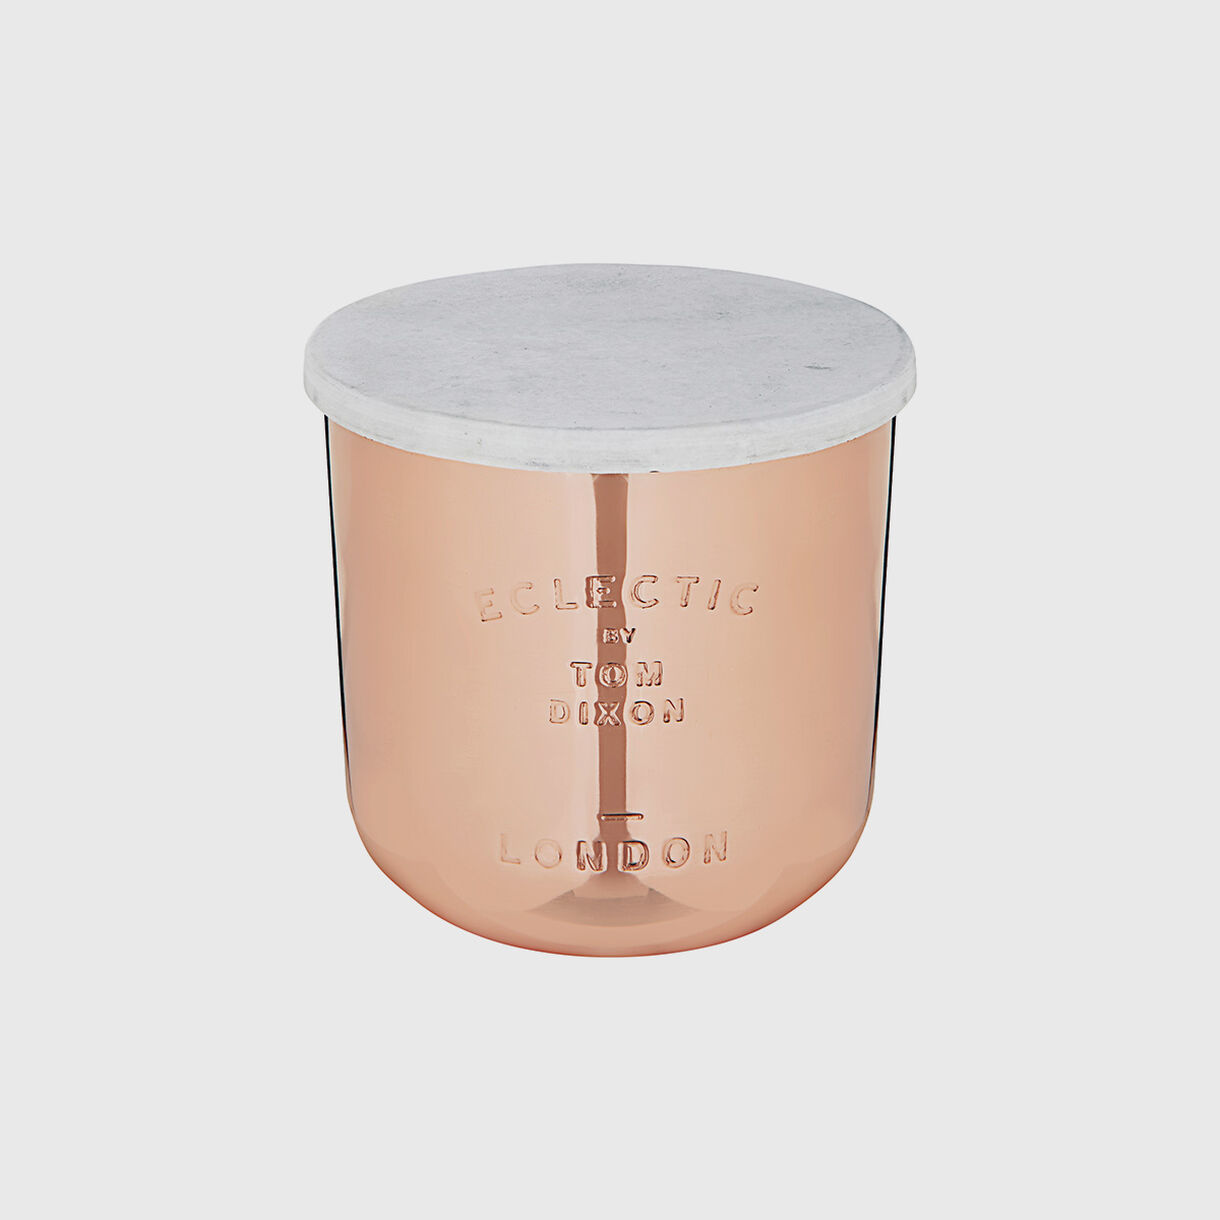 Eclectic London Candle, Medium